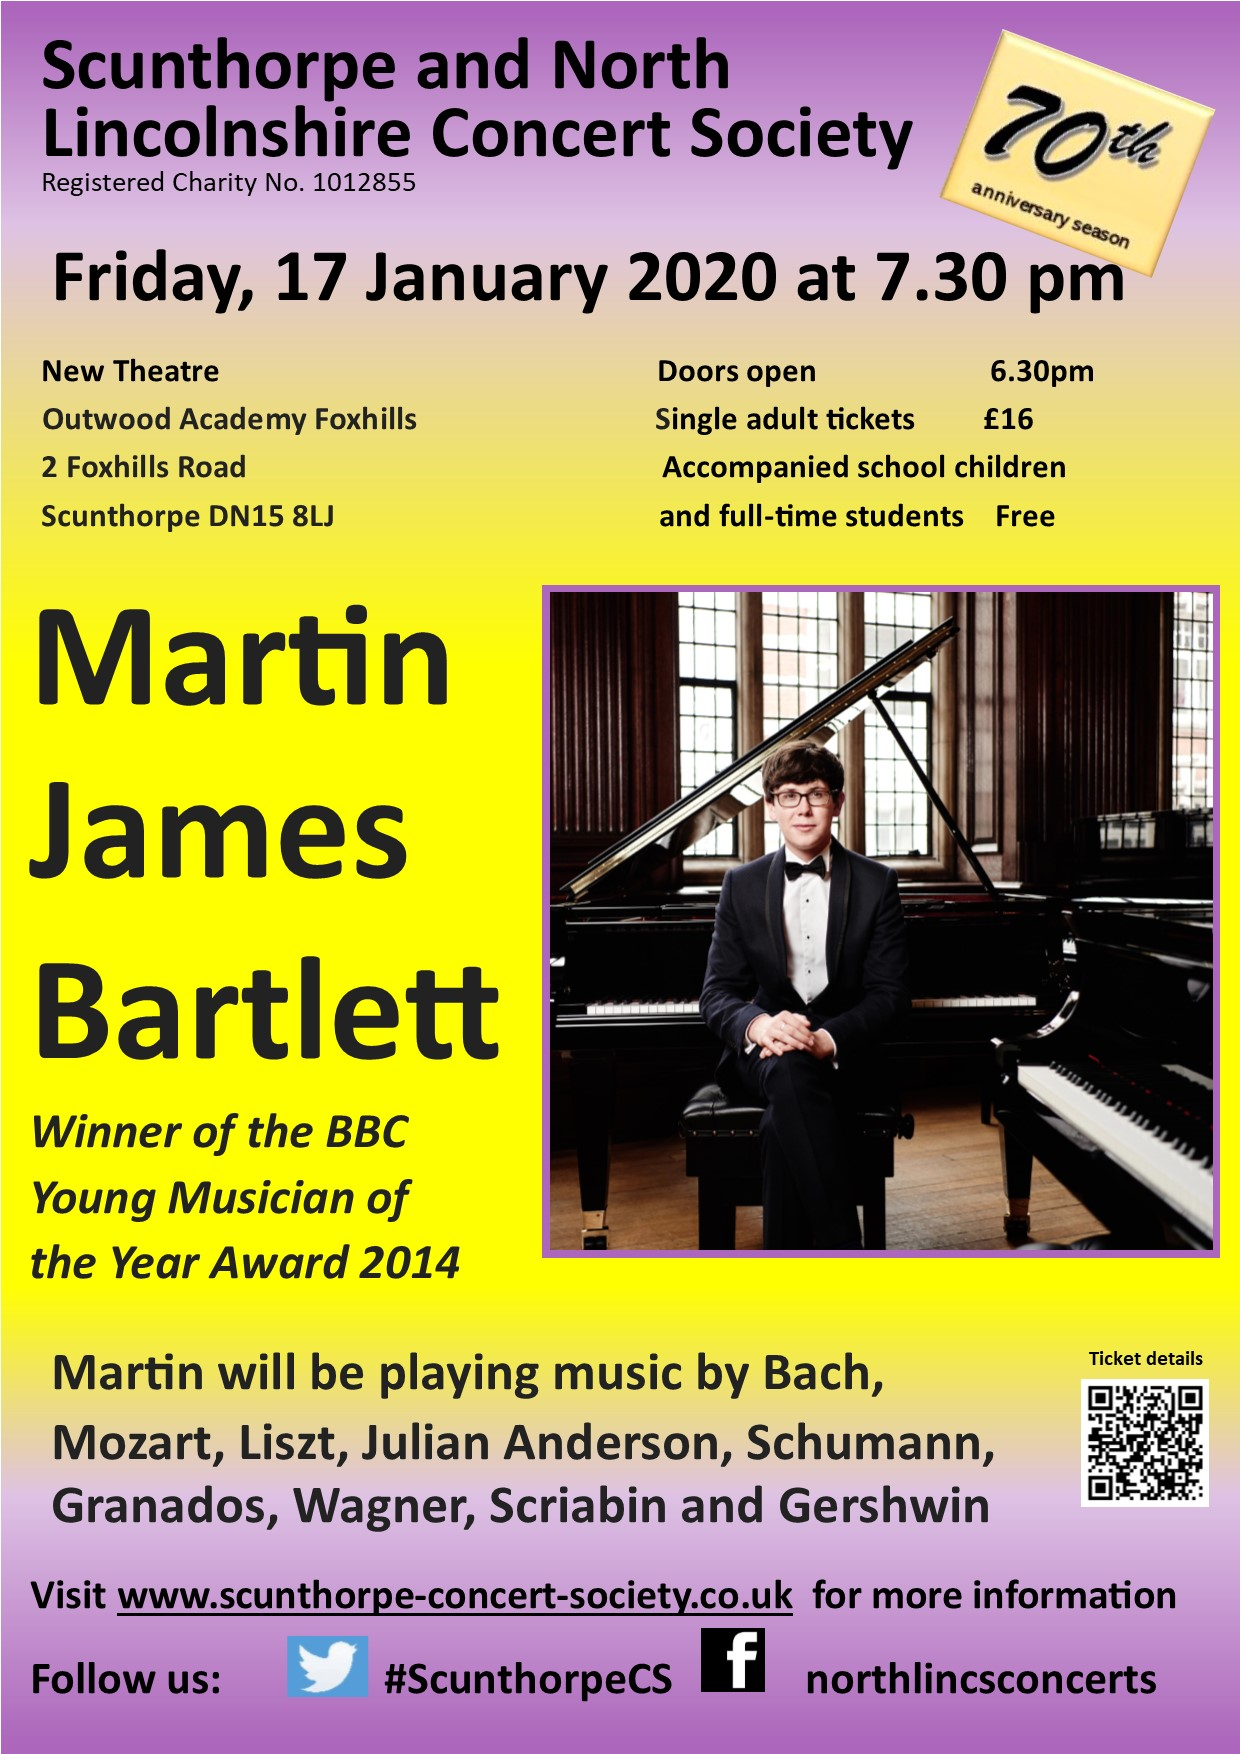 Martin James Bartlett: Winner of the BBC Young Musician of the Year Award 2014